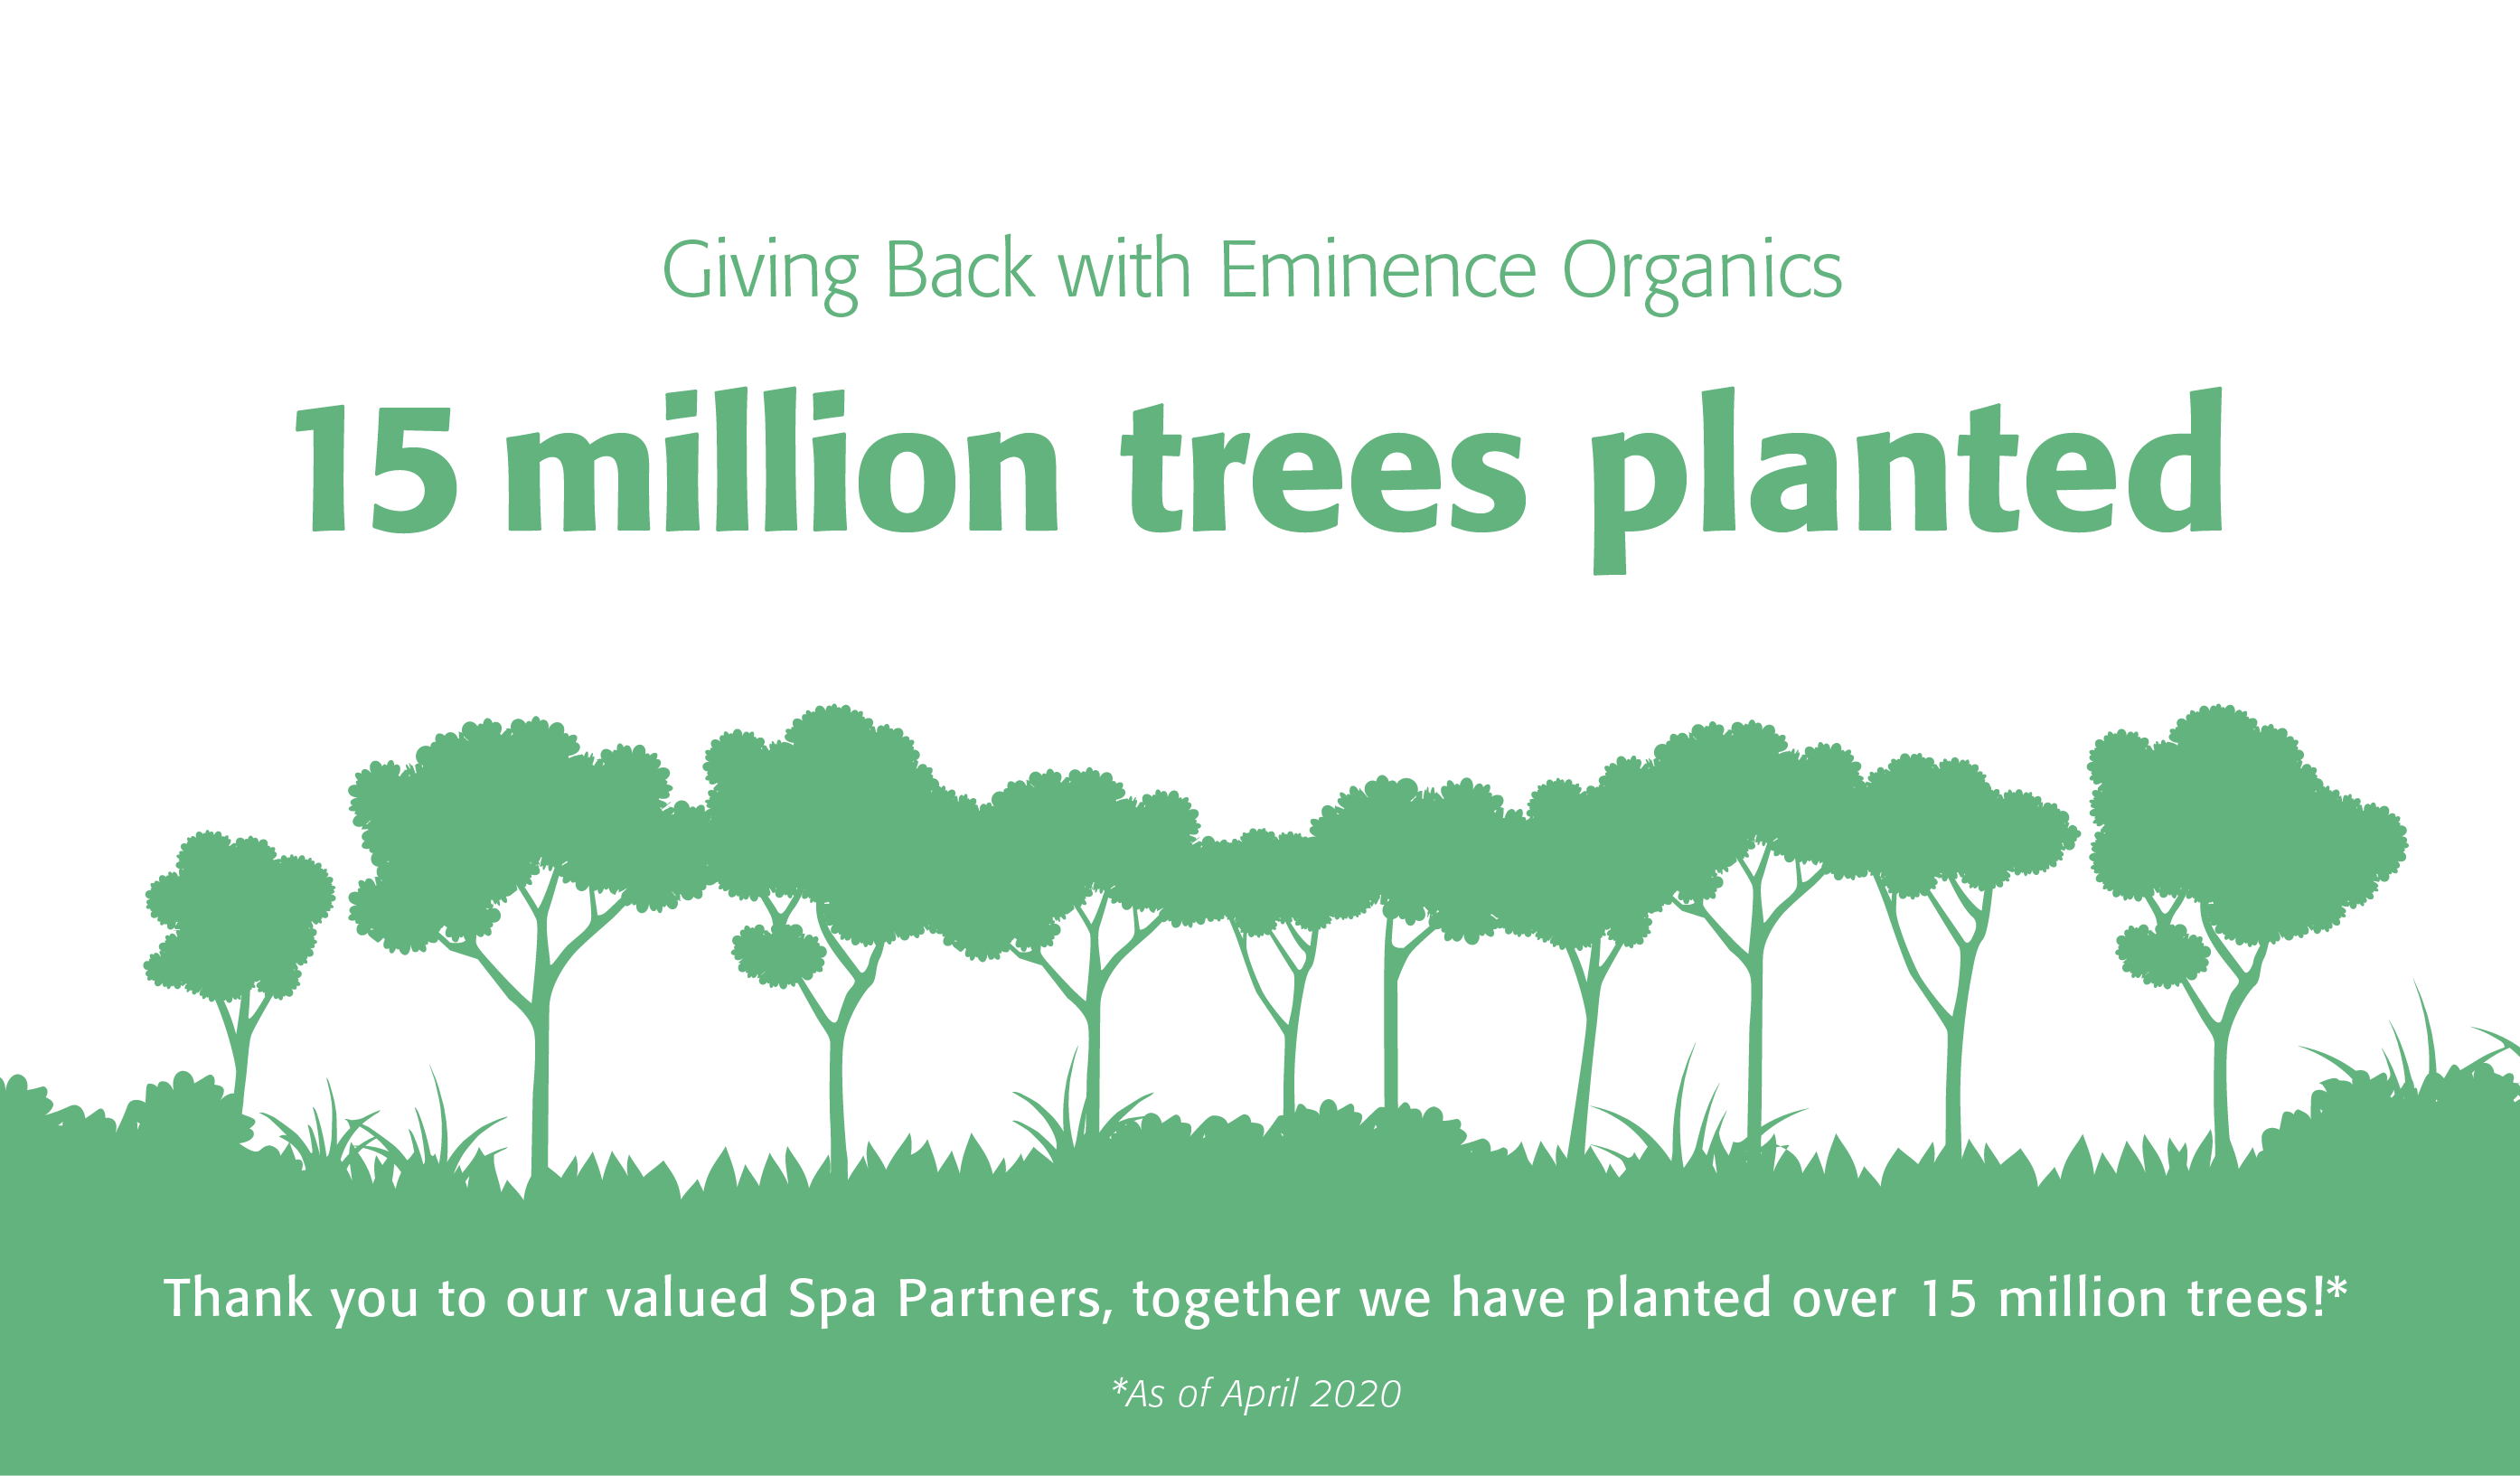 Thank you to our valued spa partners, together we have planted over 9 million trees as of November 2017.